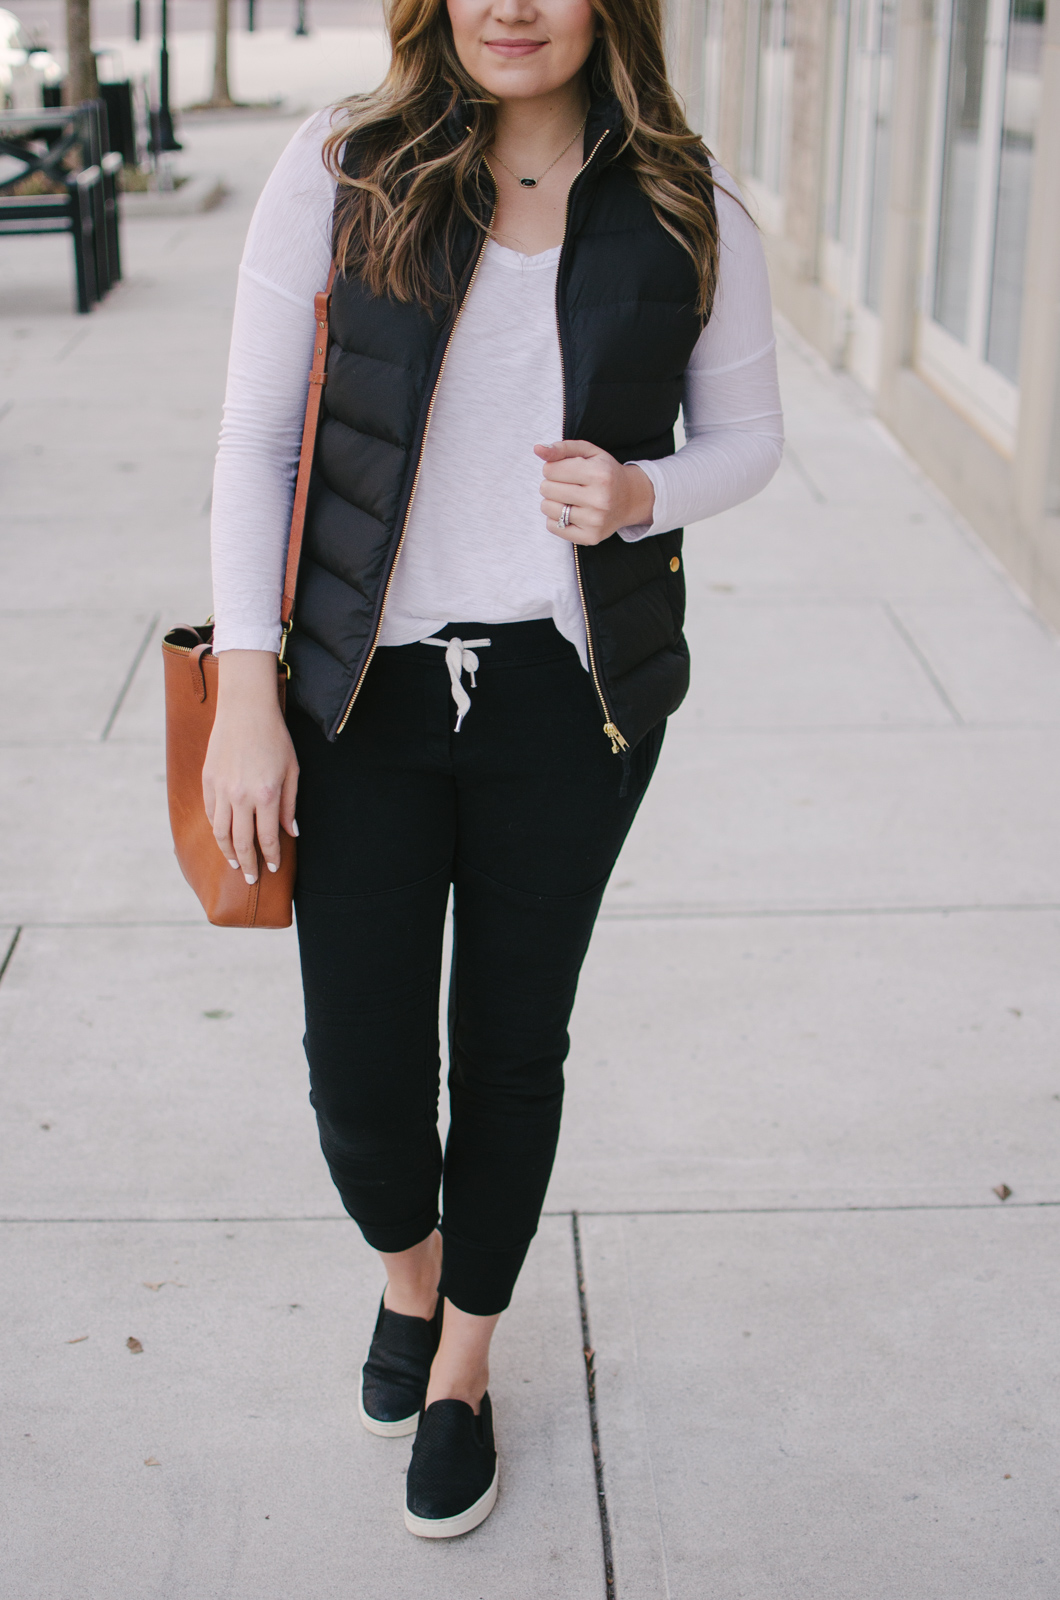 casual jogger pants outfits - two ways to wear jogger pants | Click through to shop this look or see the other casual jogger pants outfit idea! bylaurenm.com